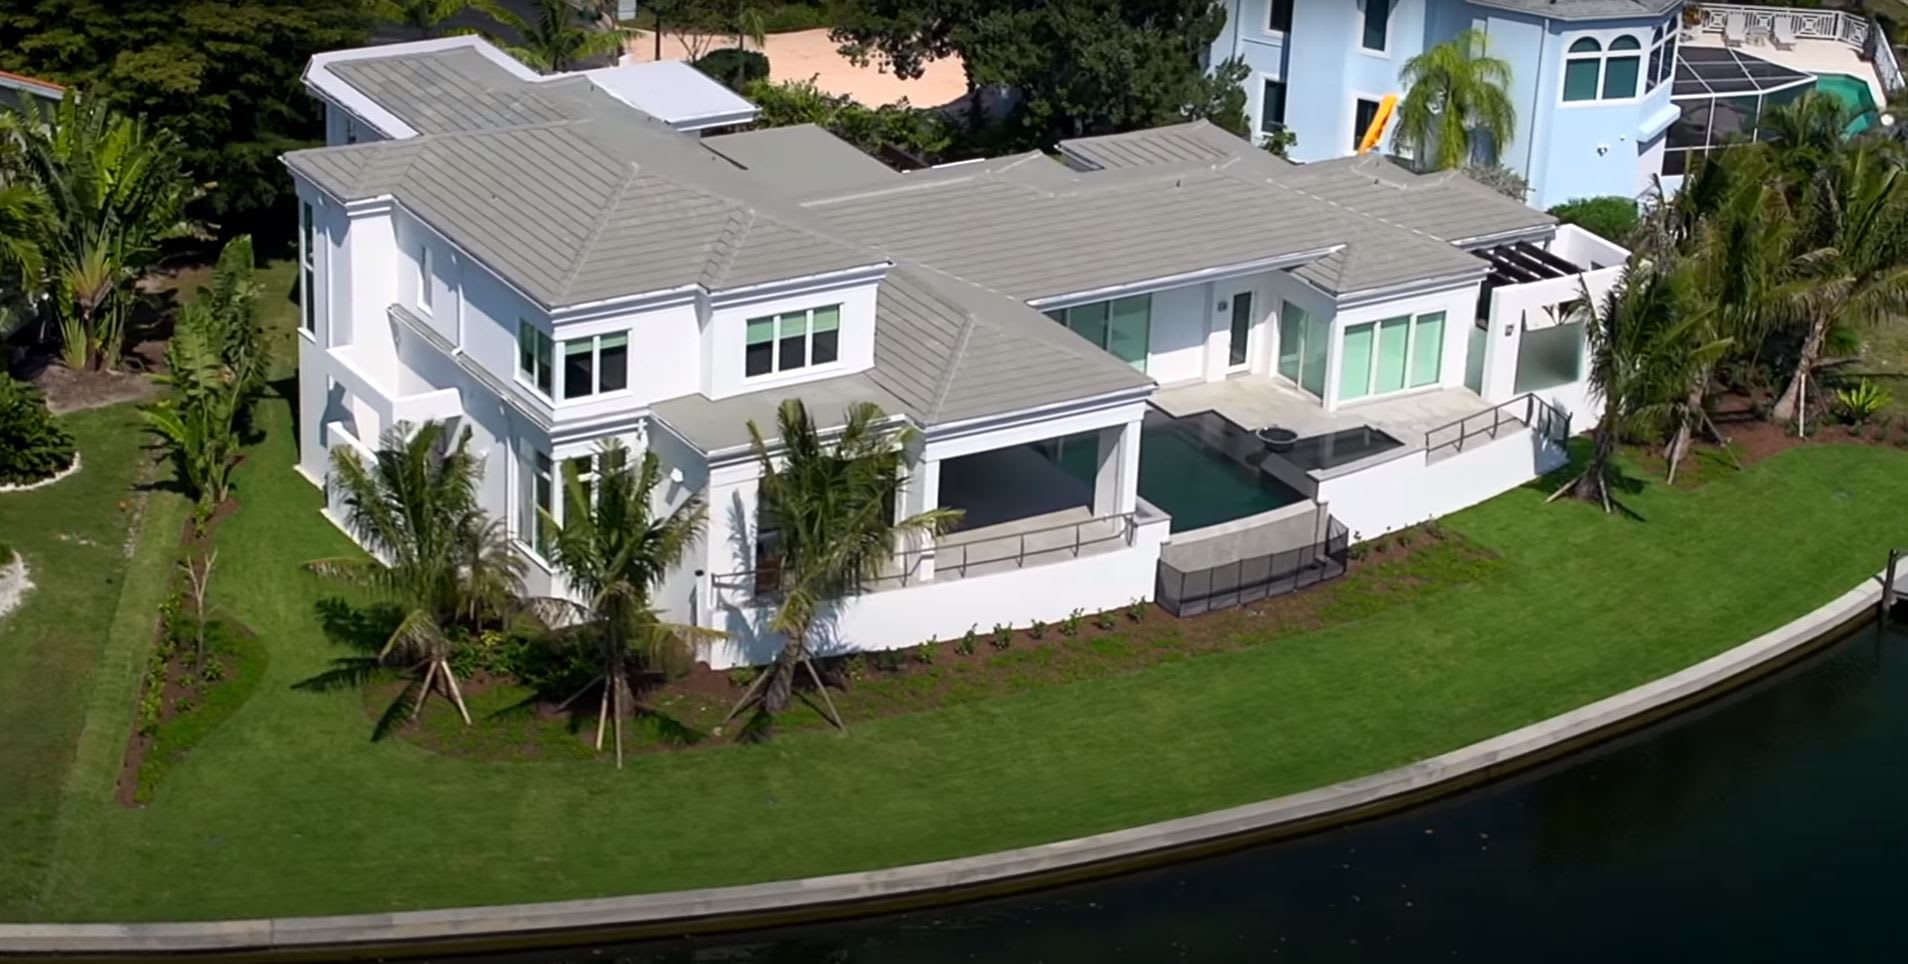 530 Harbor Gate Way - Longboat Key, FL, 34228 - Aerial Video - Home For Sale, By Roger Pettingell video preview